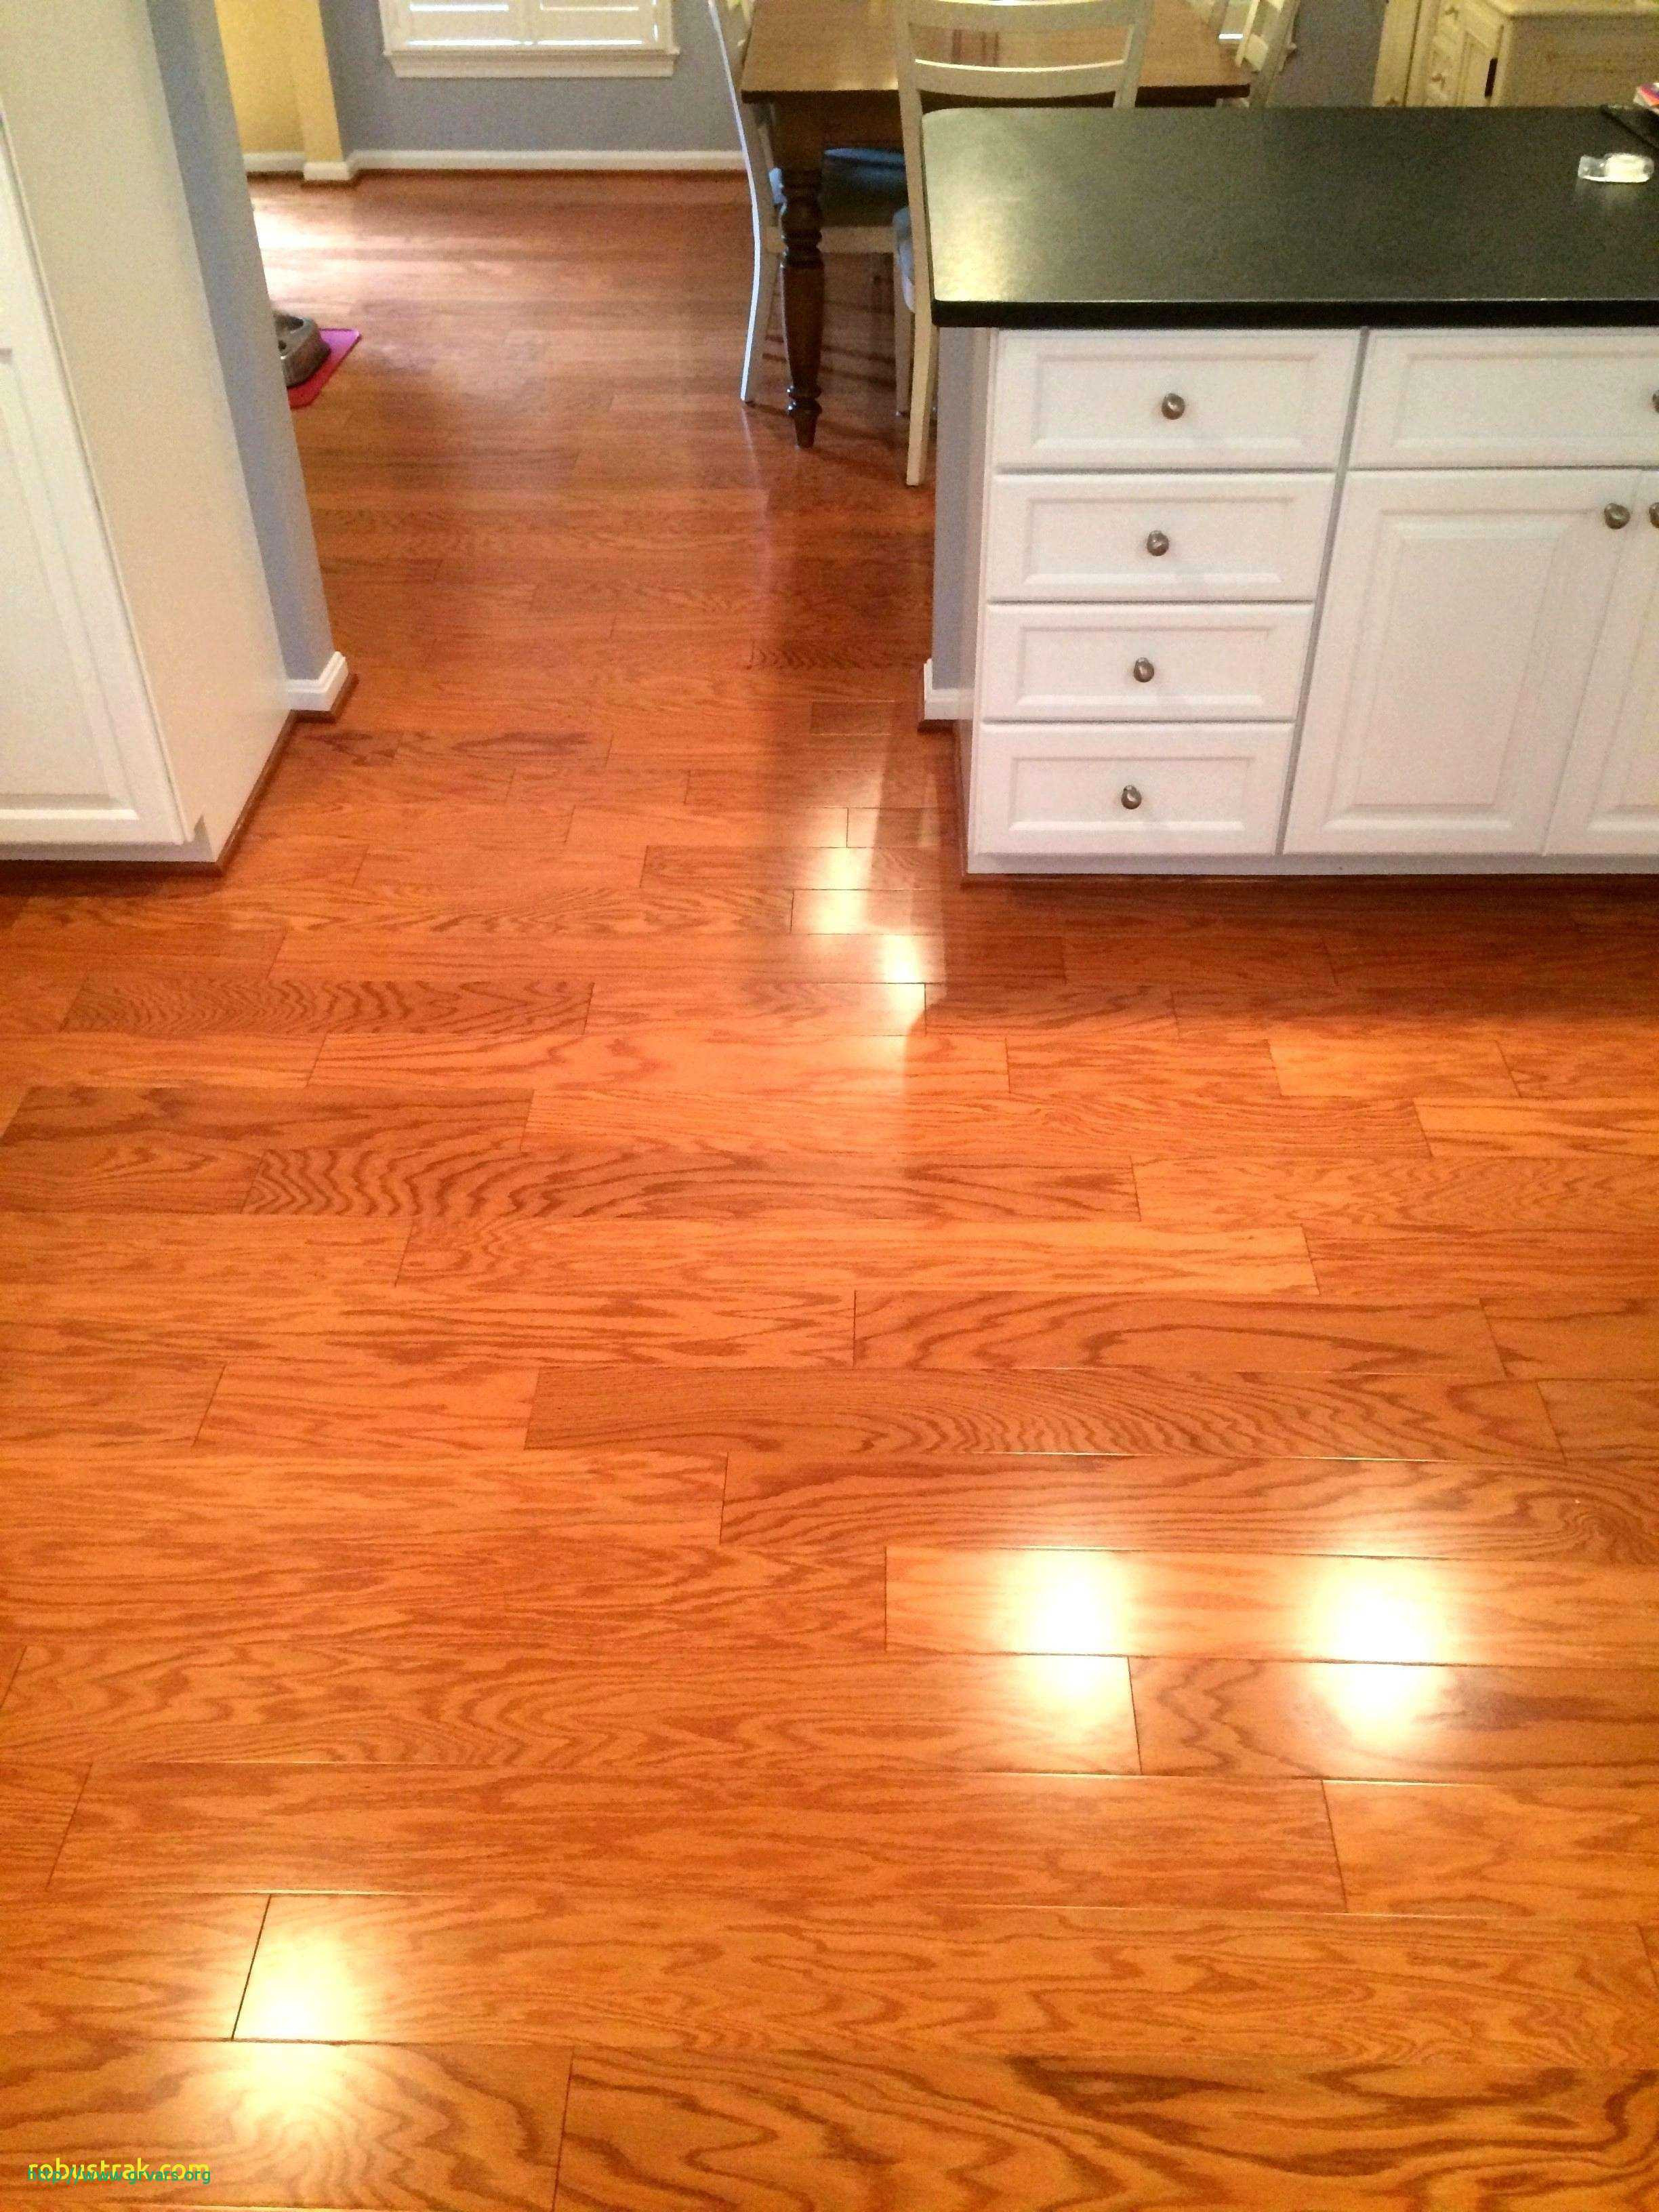 hickory hardwood flooring prices of 25 beau fore wood floors ideas blog with hardwood floors in the kitchen fresh where to hardwood flooring inspirational 0d grace place barnegat